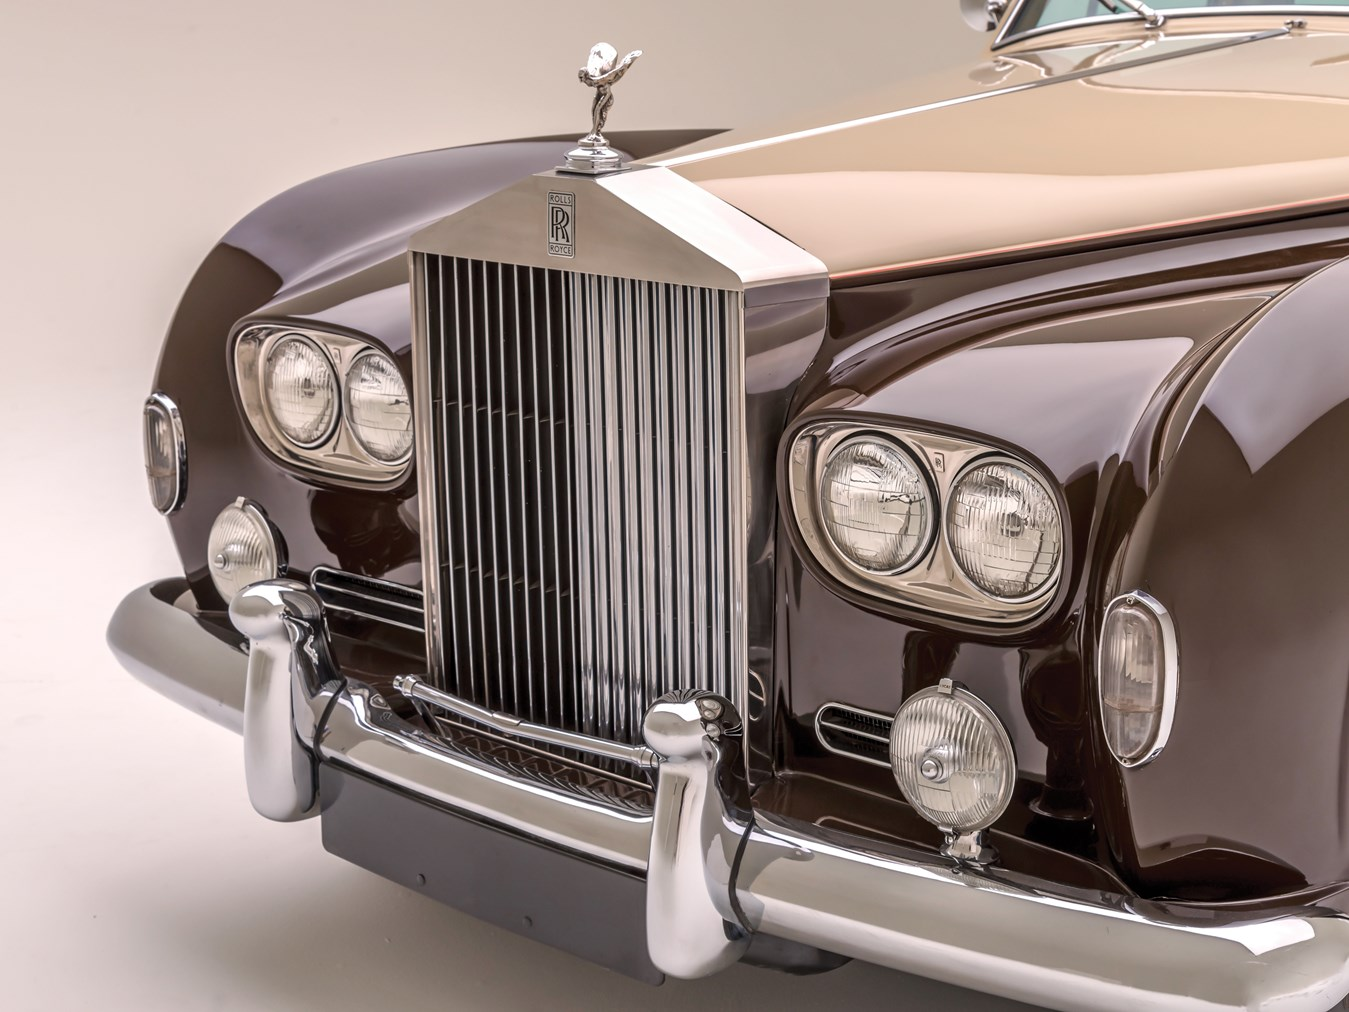 1966 Rolls-Royce Silver Cloud III Touring Limousine grille detail